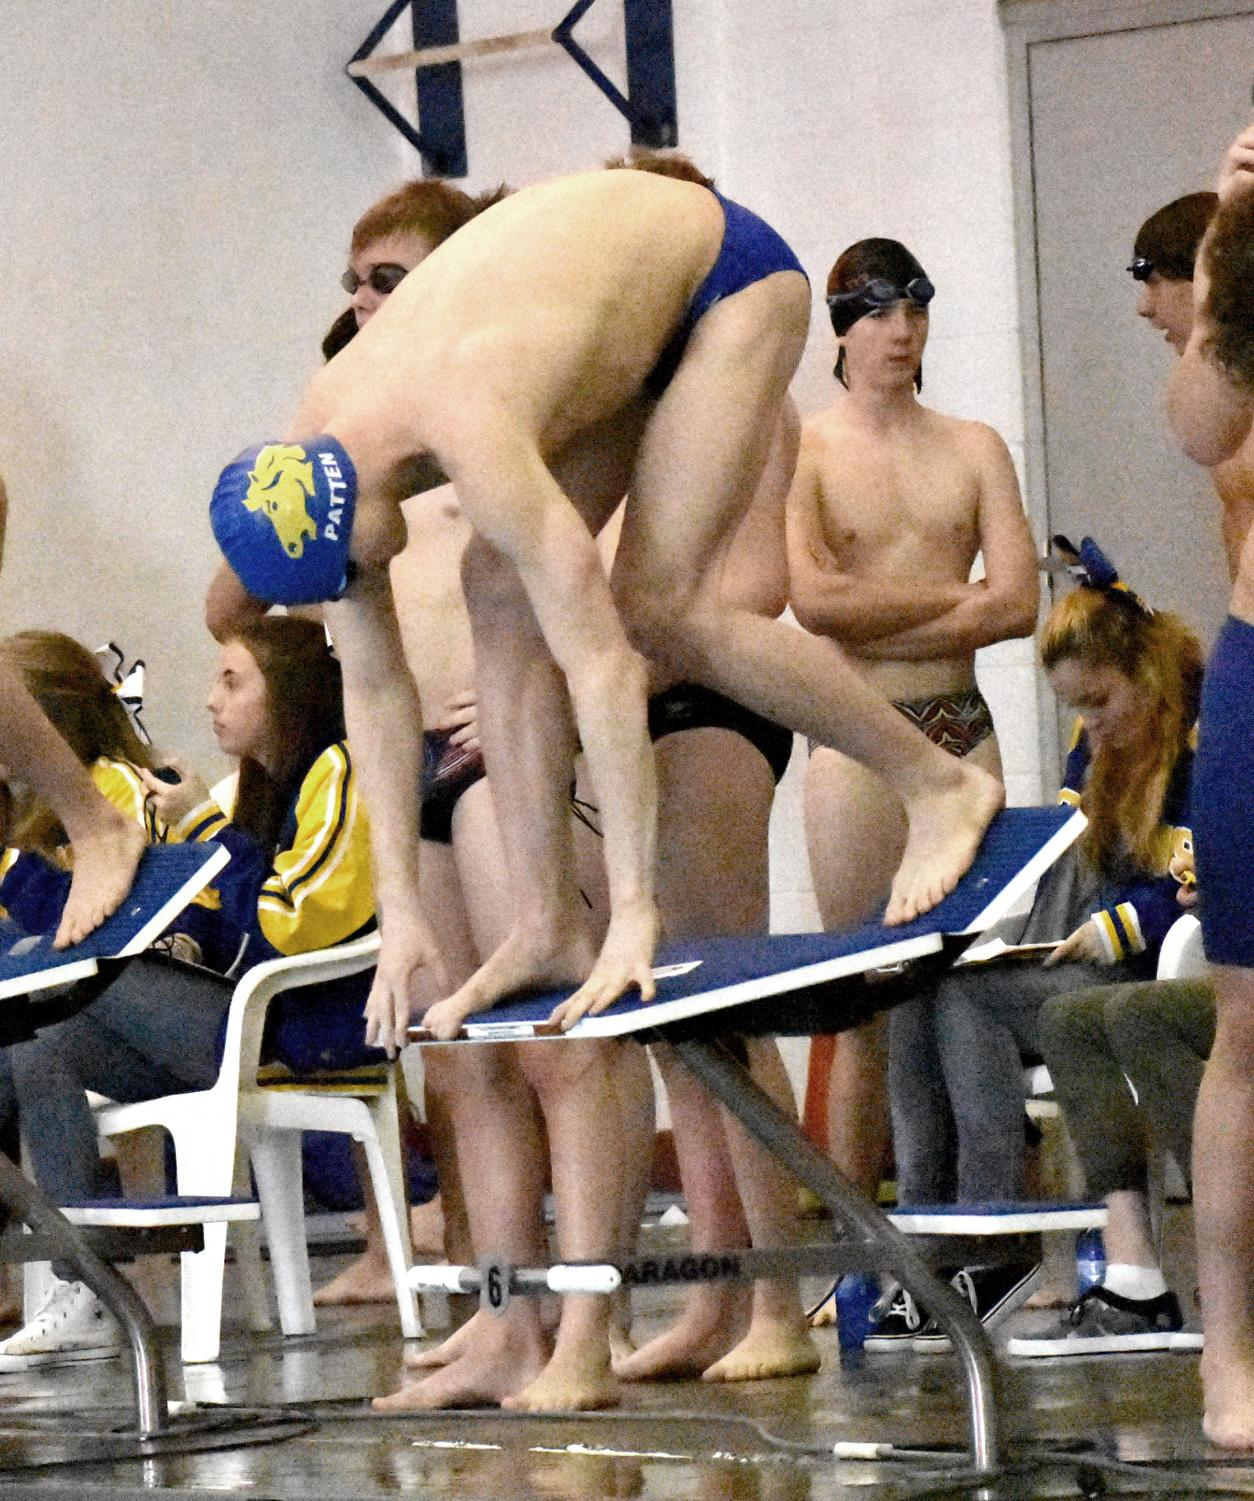 Patten takes his mark for one of his final races in the Sheridan Junior High School pool. (Photo Bailey Hanson)